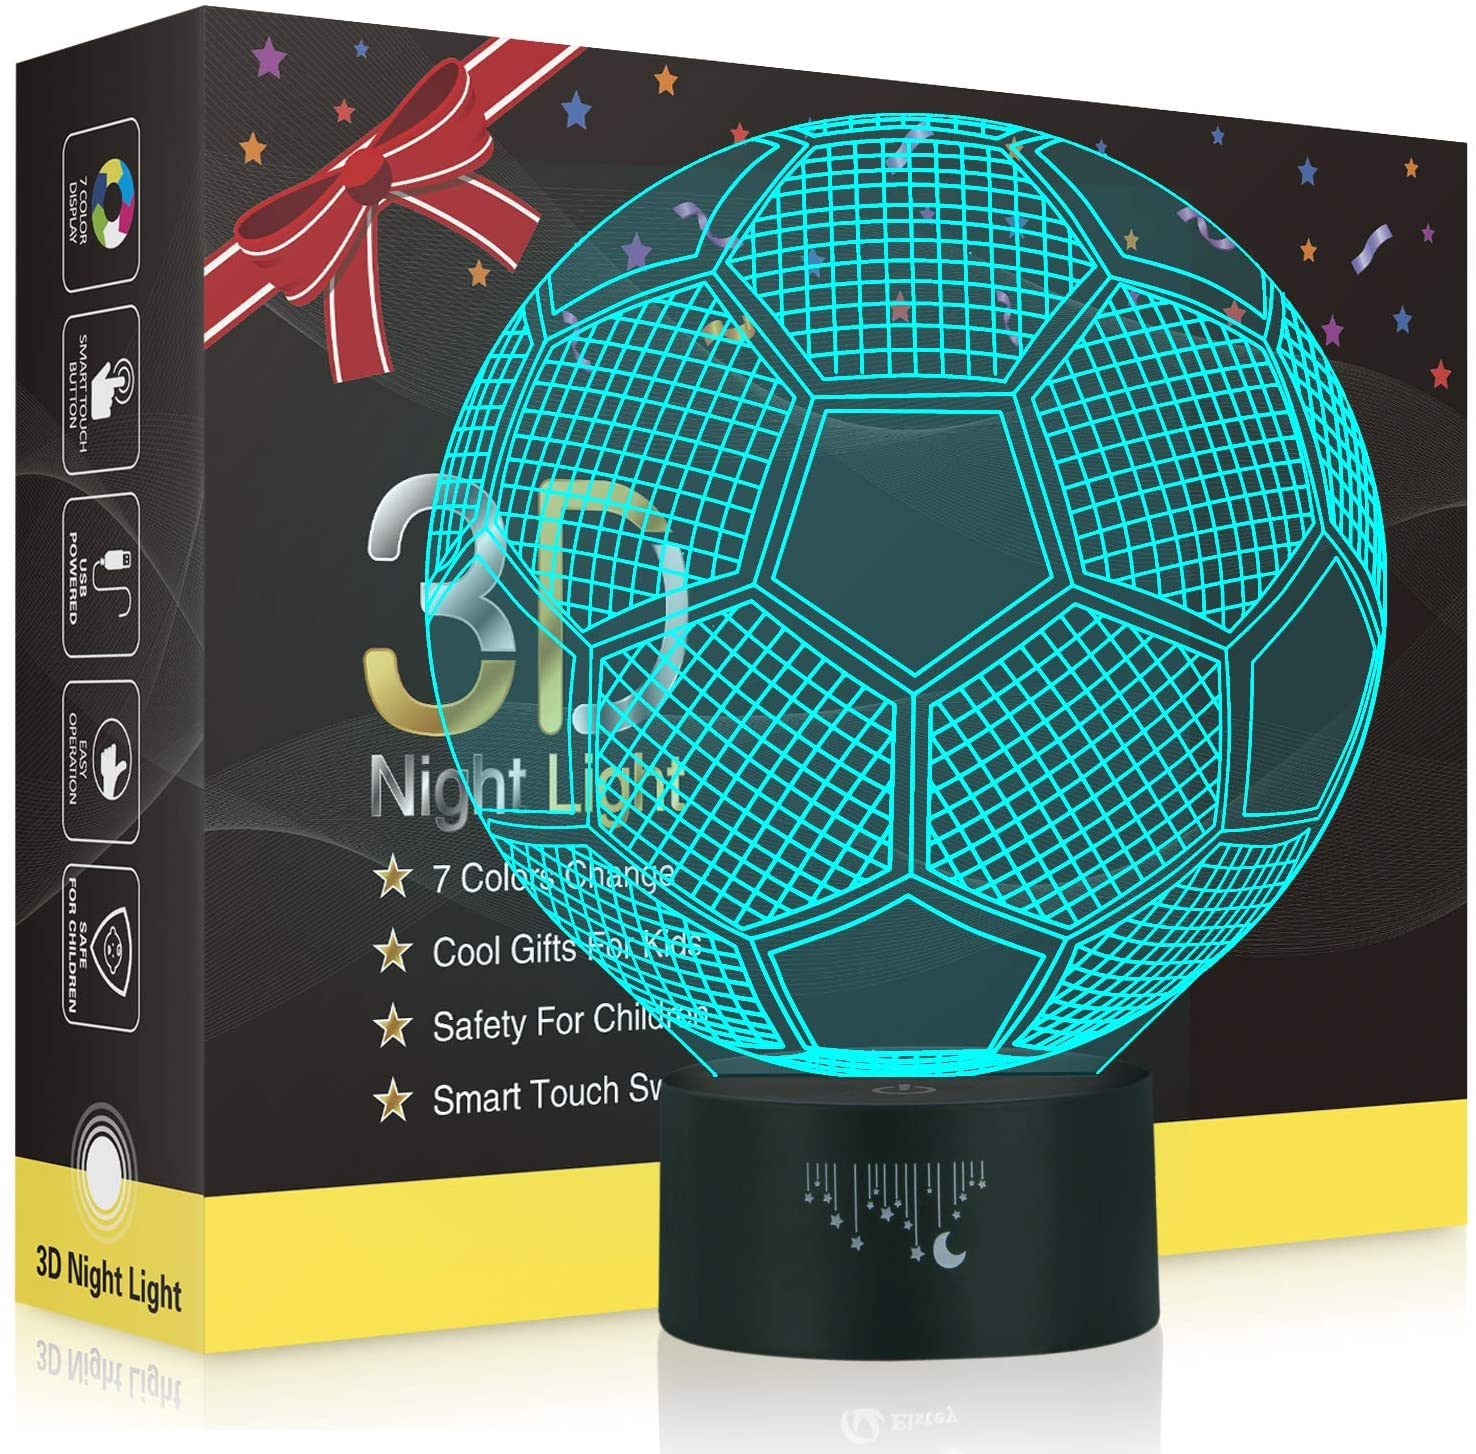 Soccer 3D Night Light for Boys, Rquite Optical Illusion Lamps for Kids Bedroom Decors, 7 Color Touch Switch Cool Gifts for Birthday Mother's & Father's Day Christmas Holidays